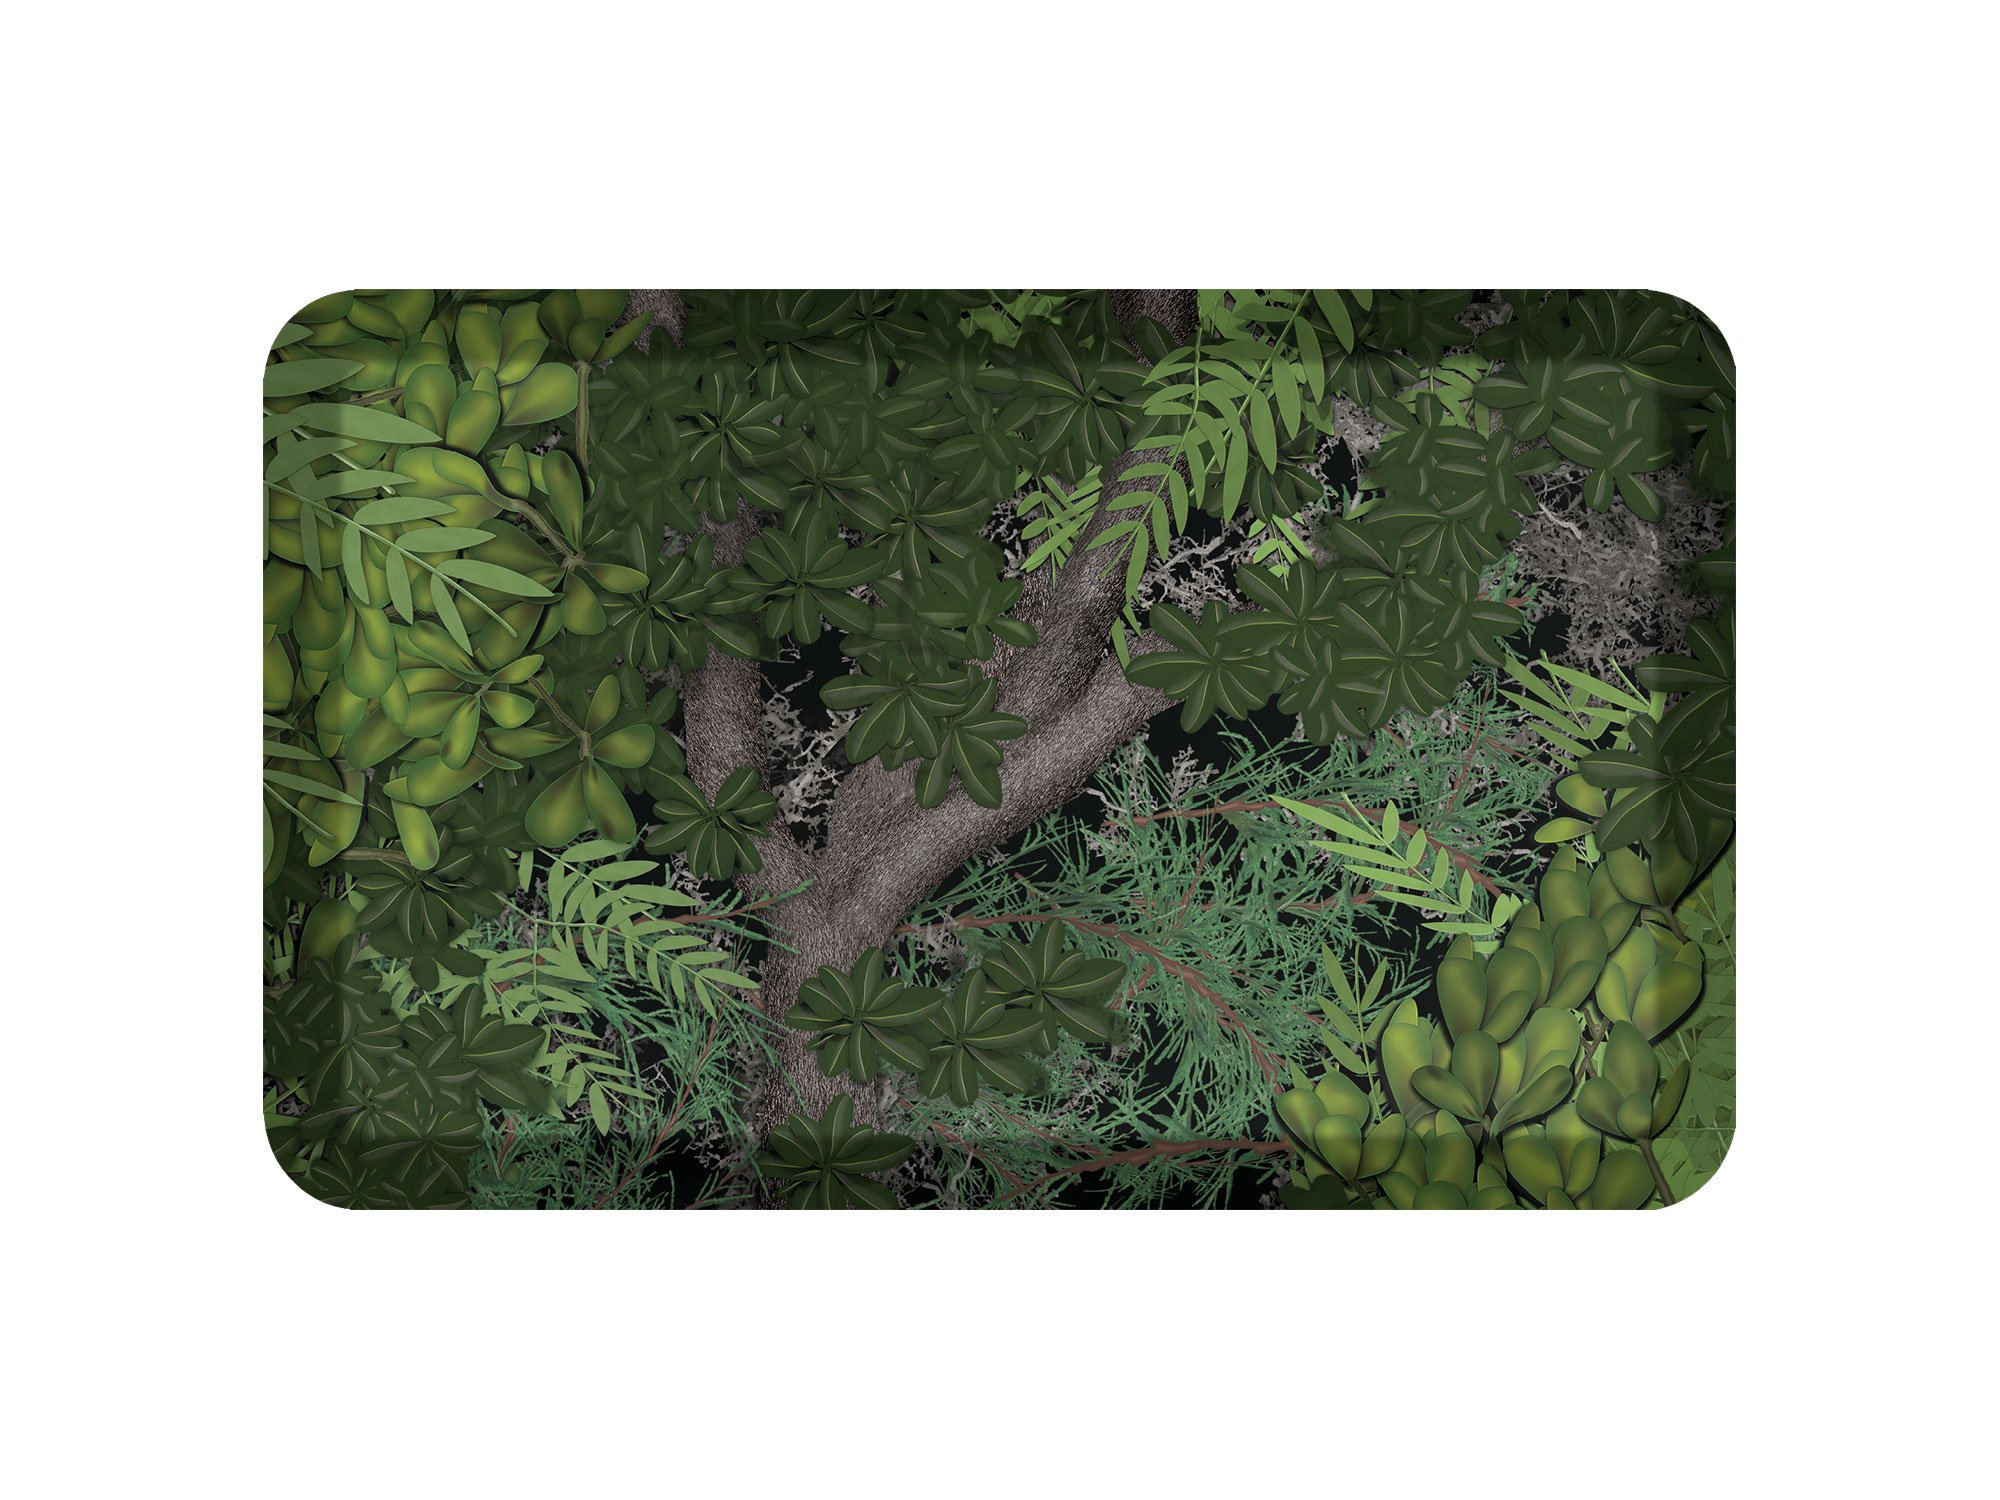 NewLife by GelPro Anti-Fatigue Designer Comfort Kitchen Floor Mat, 20x32, Hill Country Camo Green/Black Stain Resistant Surface with 3/4'' Thick Ergo-foam core for Health and Wellness